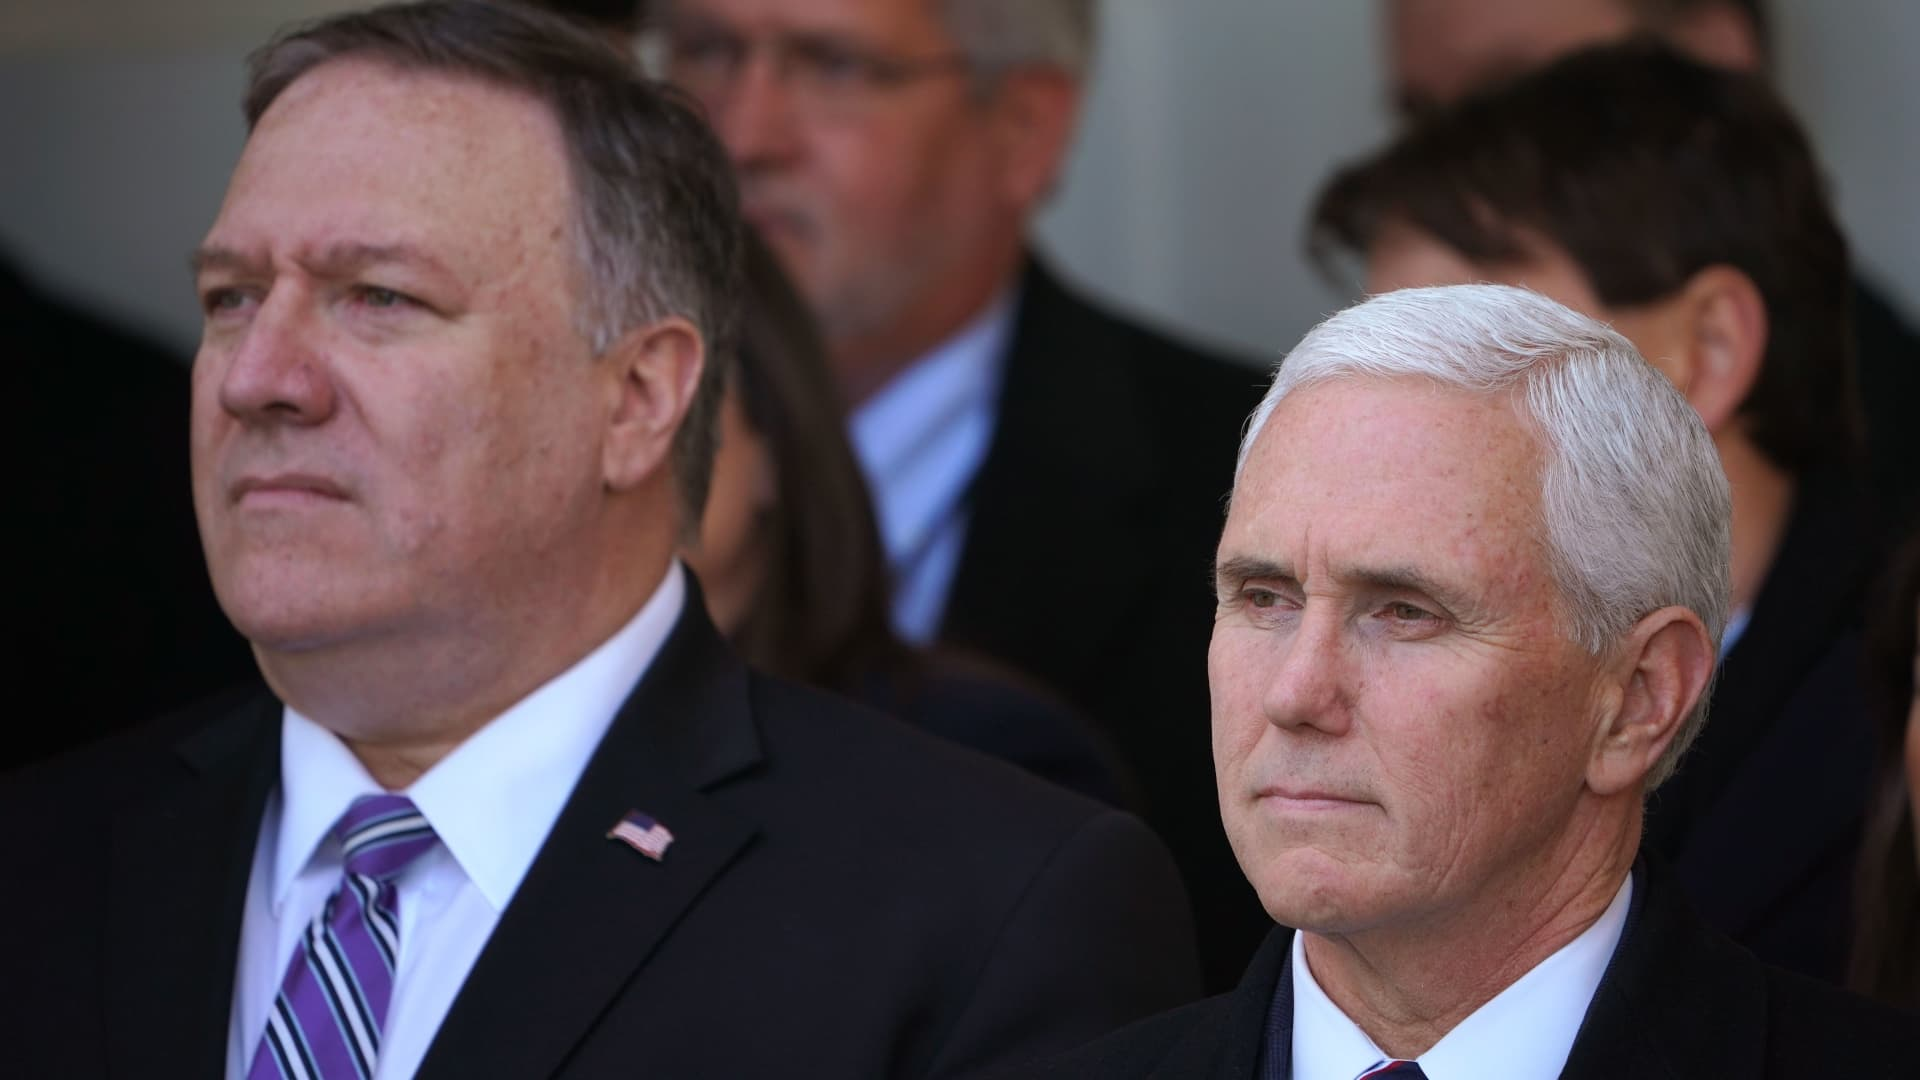 US Secretary of State Mike Pompeo (L) and Vice President Mike Pence listen as President Donald Trump speaks about the government shutdown on January 25, 2019, from the Rose Garden of the White House in Washington, DC. - Trump says will sign bill to reopen the government until February 15.